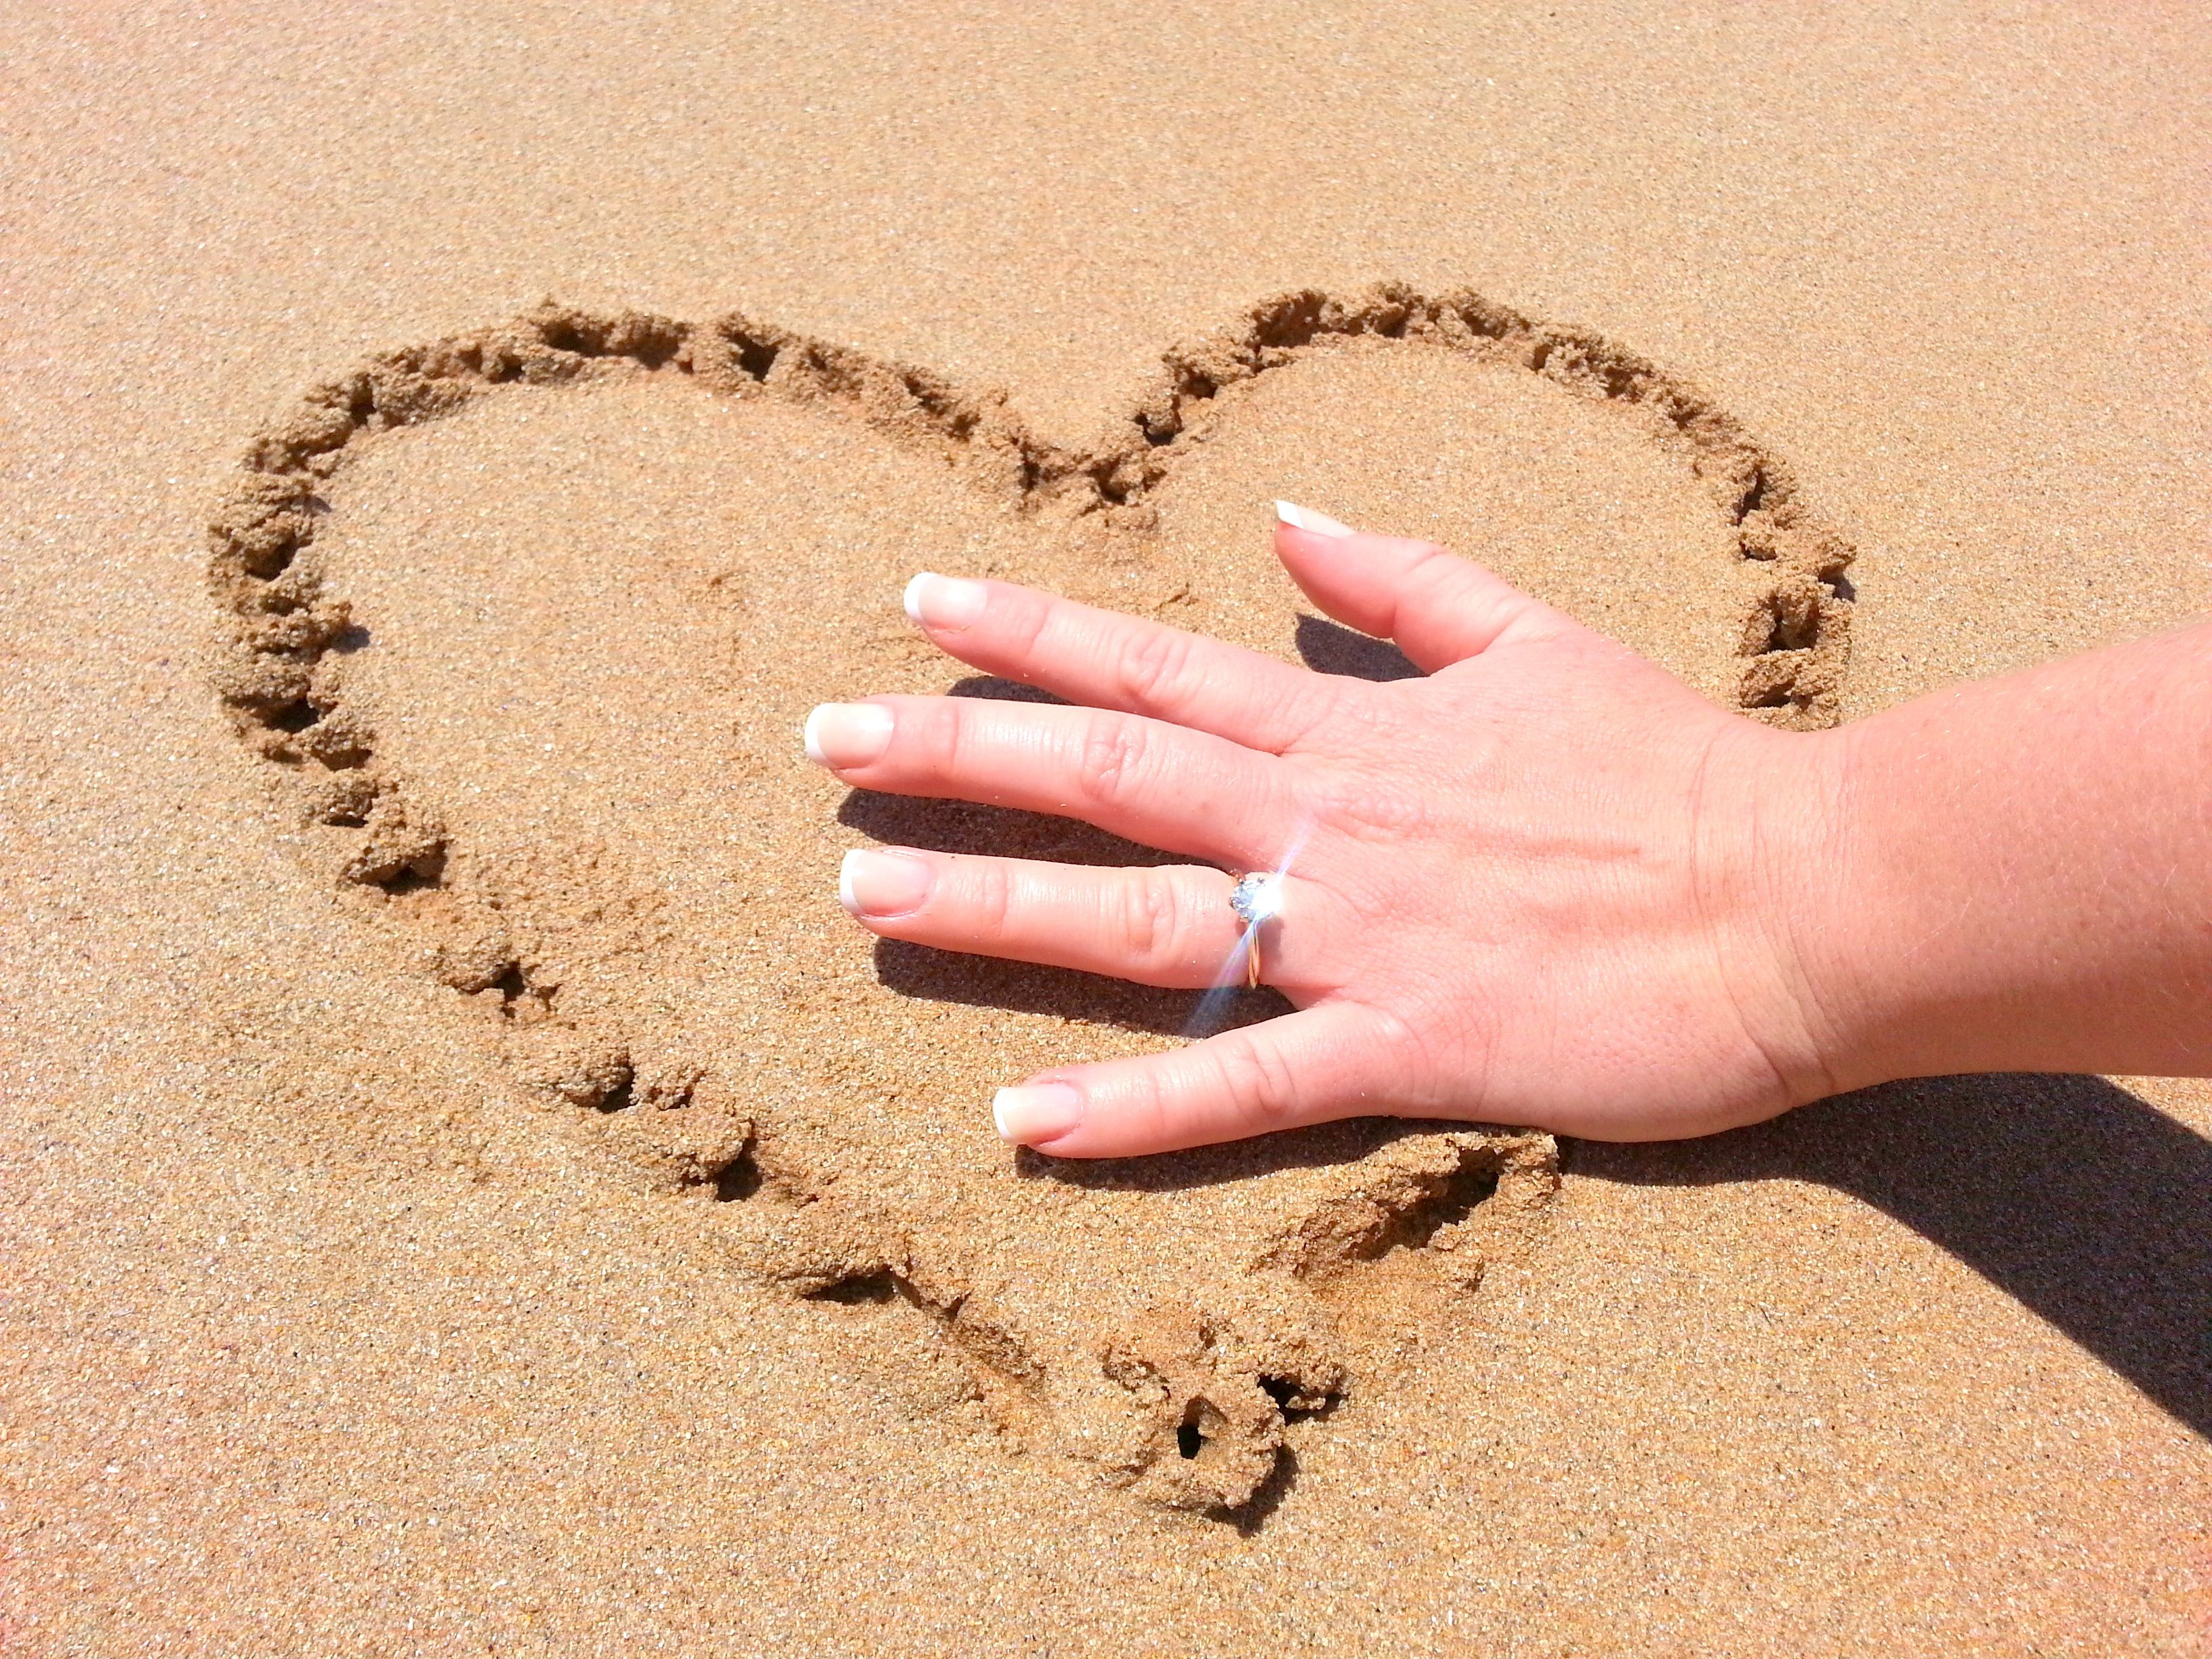 This photo of my beautiful engagement ring took place at the beach closest to our home. A perfect location to showcase my beautiful diamond that was handpicked with love by my incredible fiance.